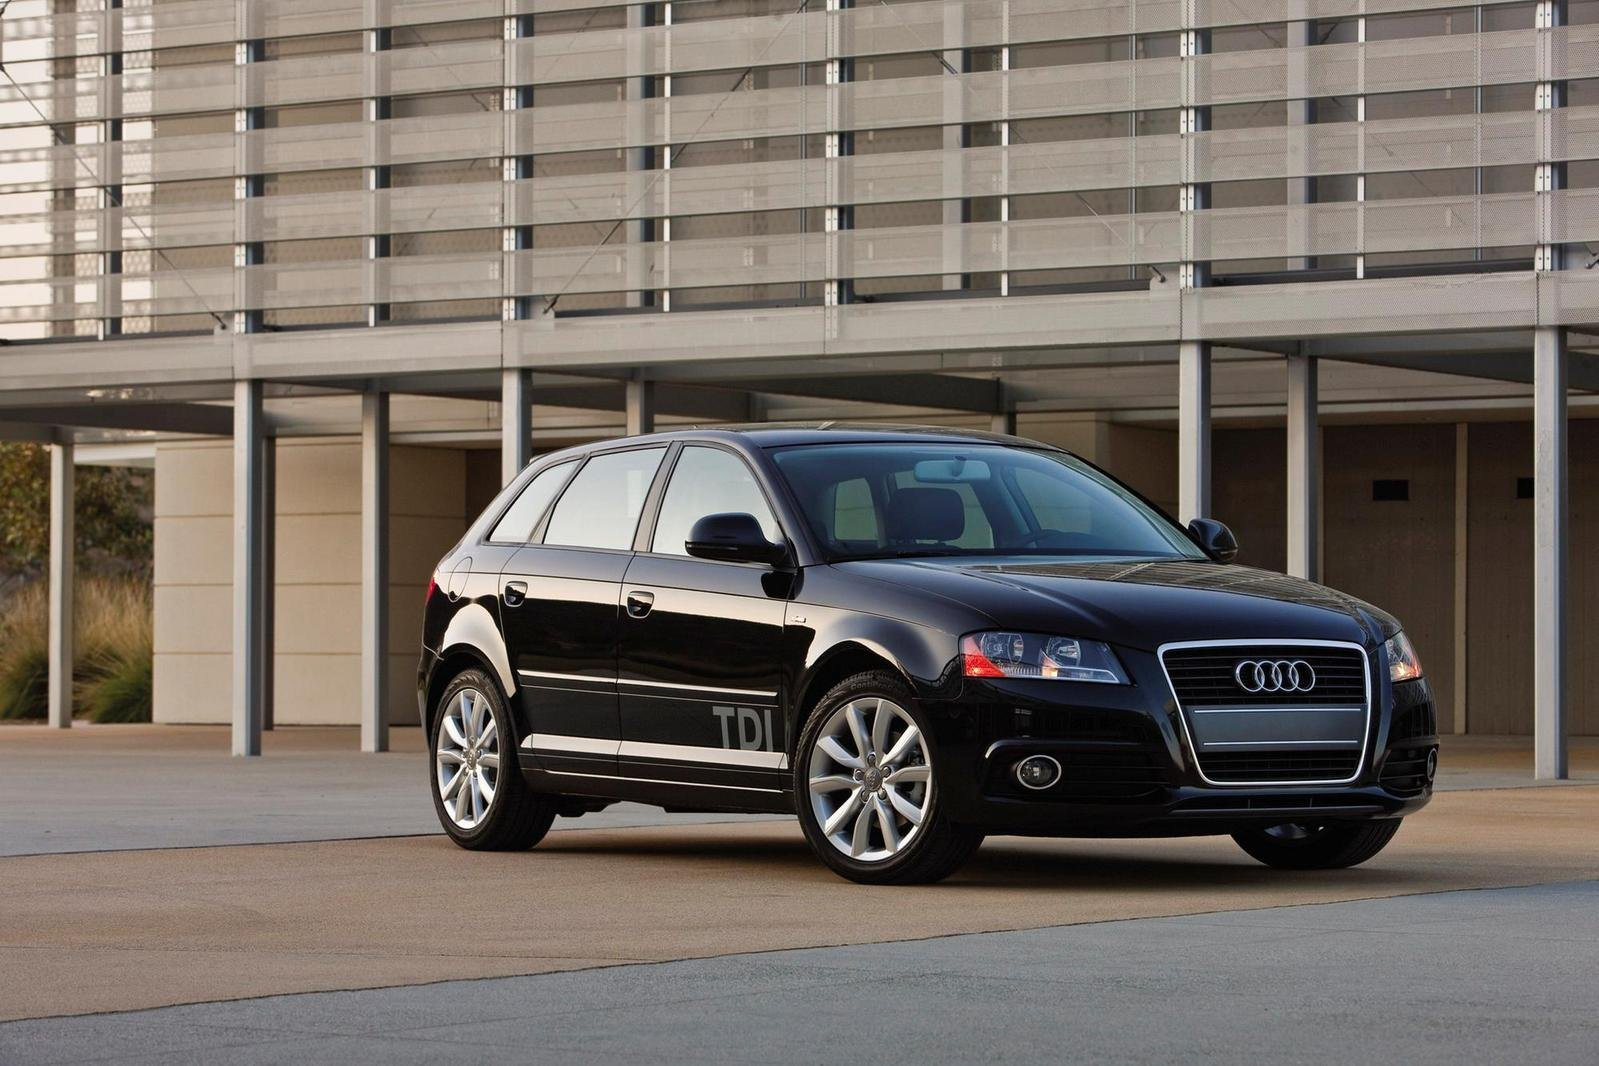 audi a3 tdi 2010 green car of the year picture 337137. Black Bedroom Furniture Sets. Home Design Ideas